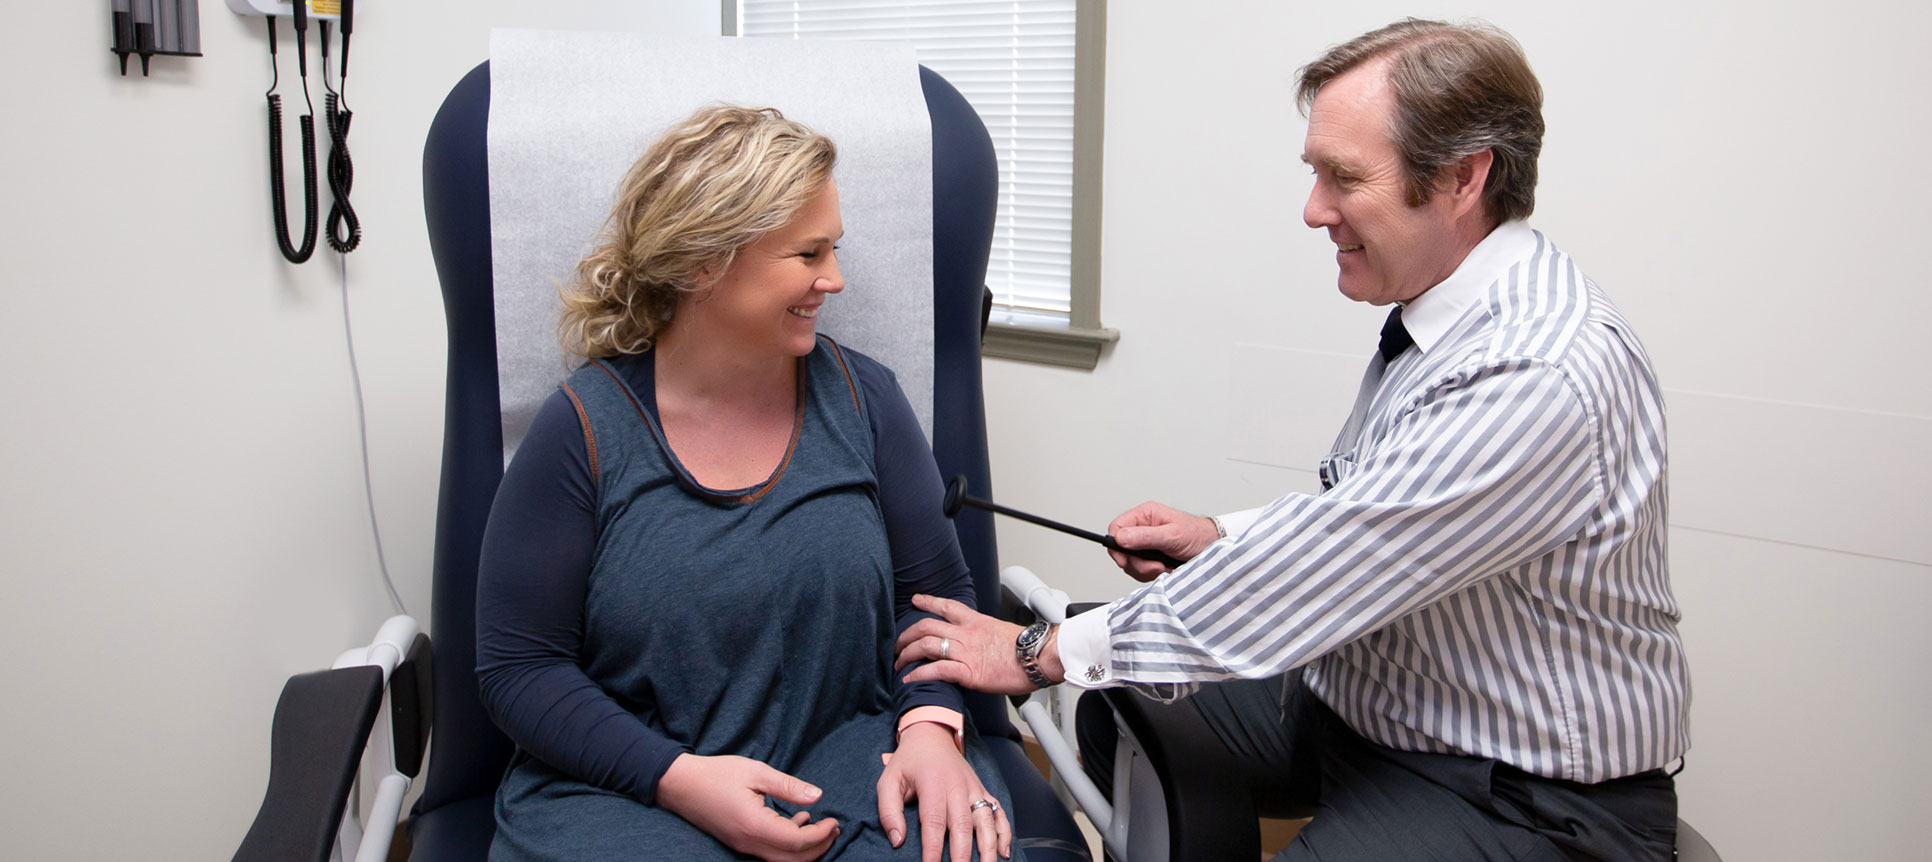 A provider meets with a patient